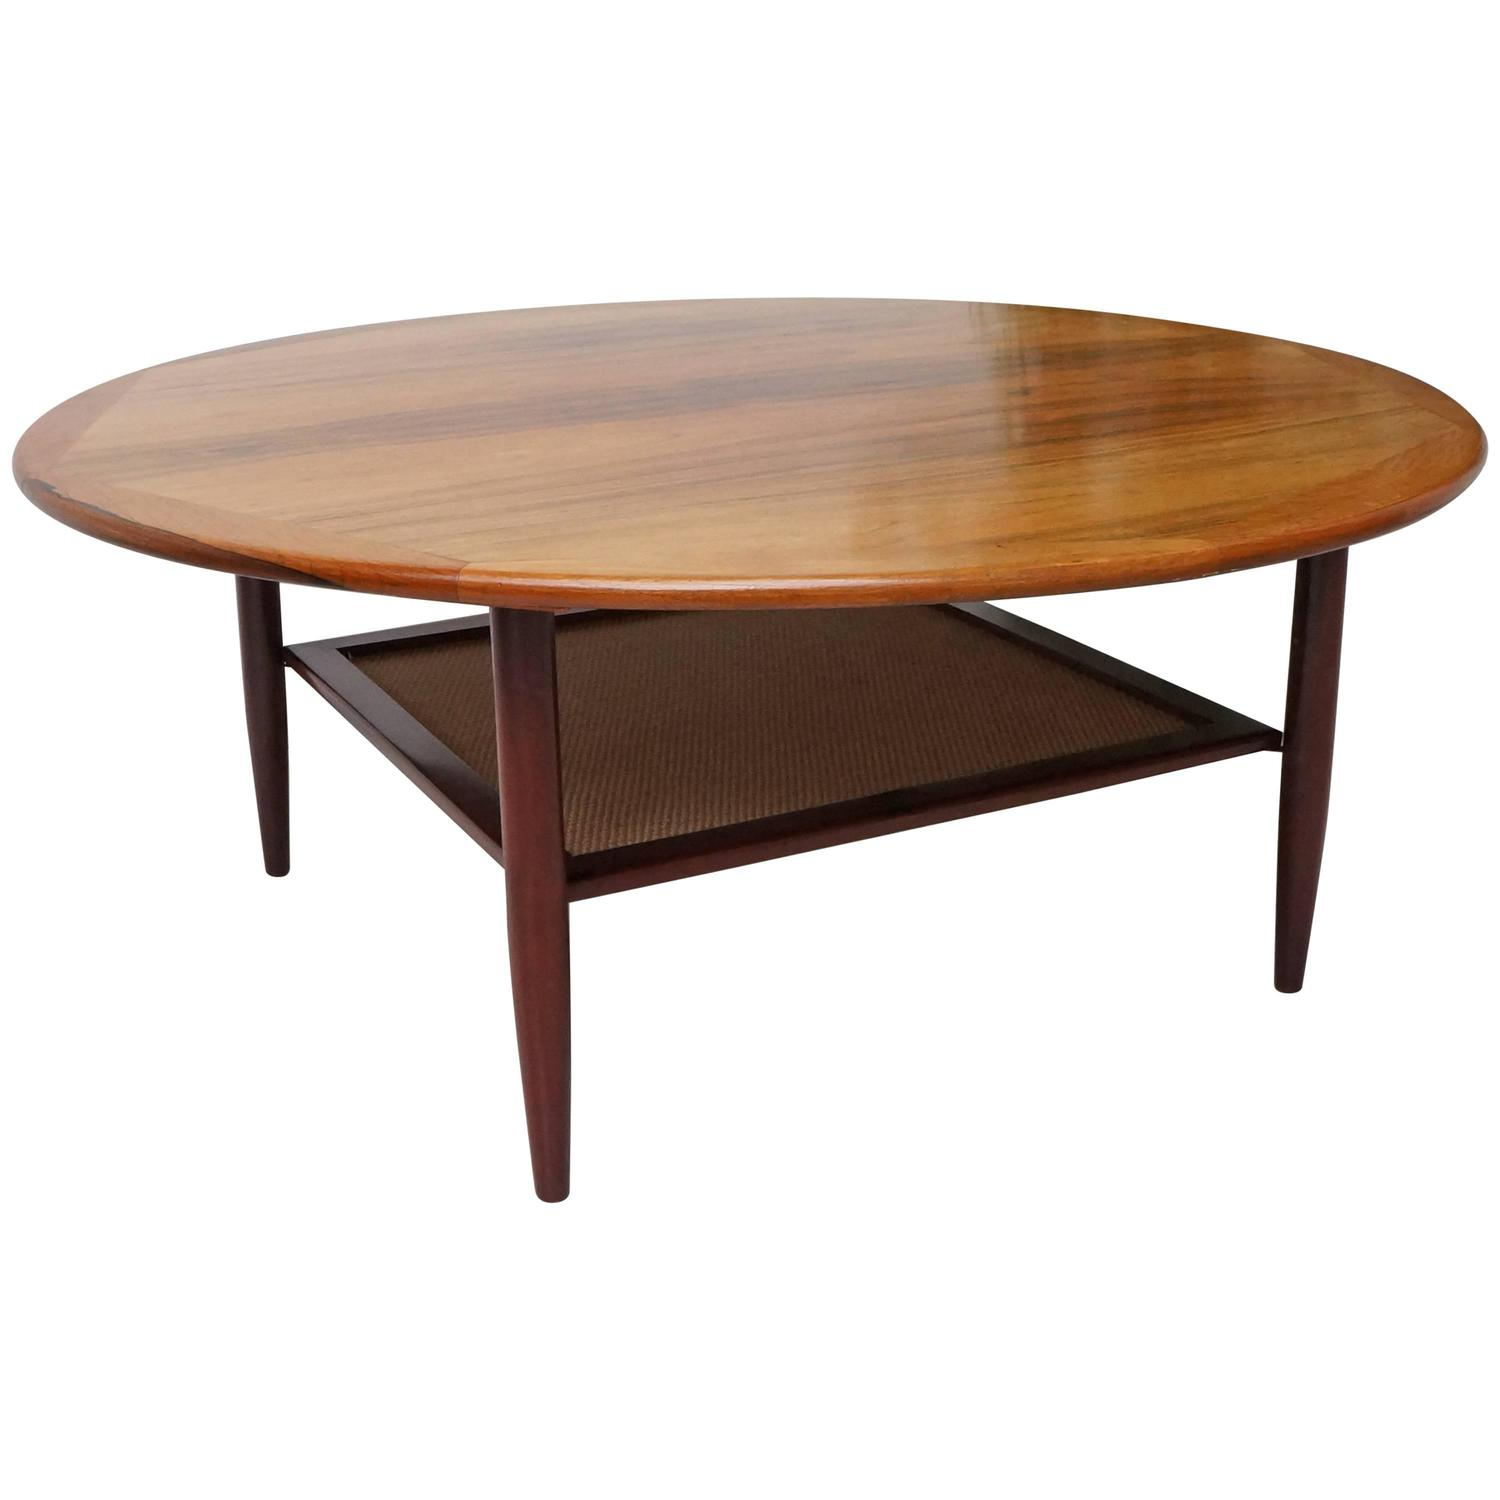 Large round wooden coffee table 1960s at 1stdibs Round coffee tables